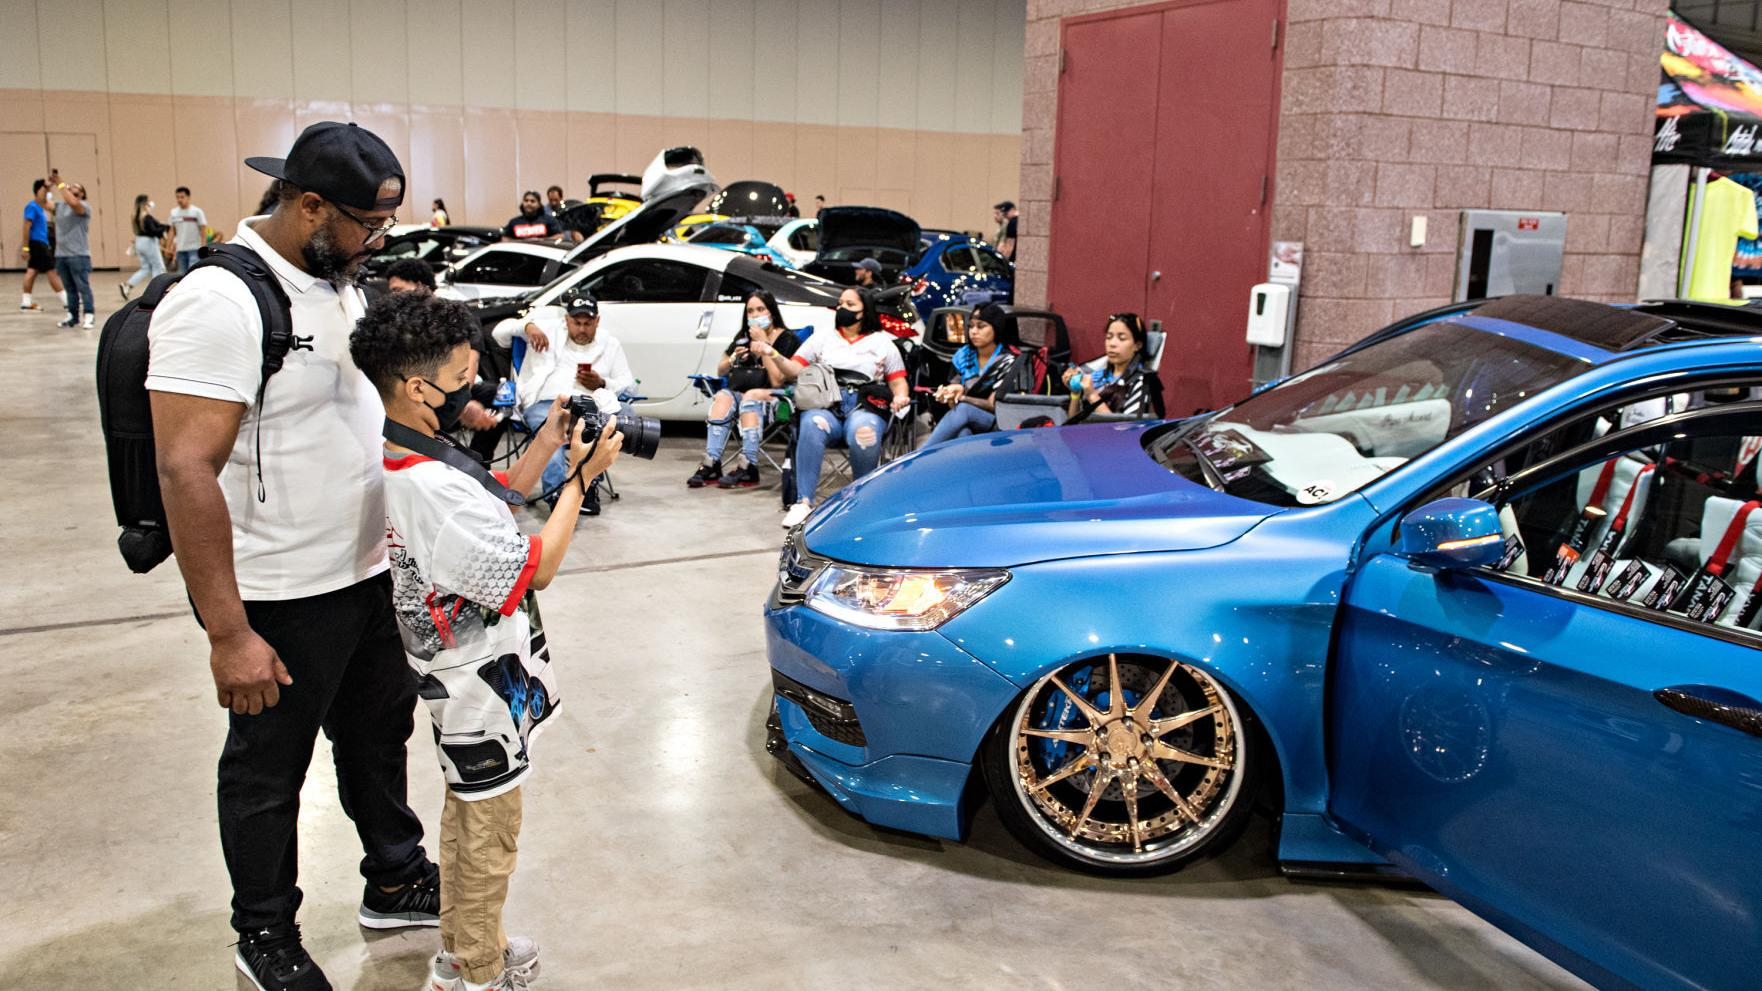 A car expo welcomes the public back inside the Atlantic City Convention Center